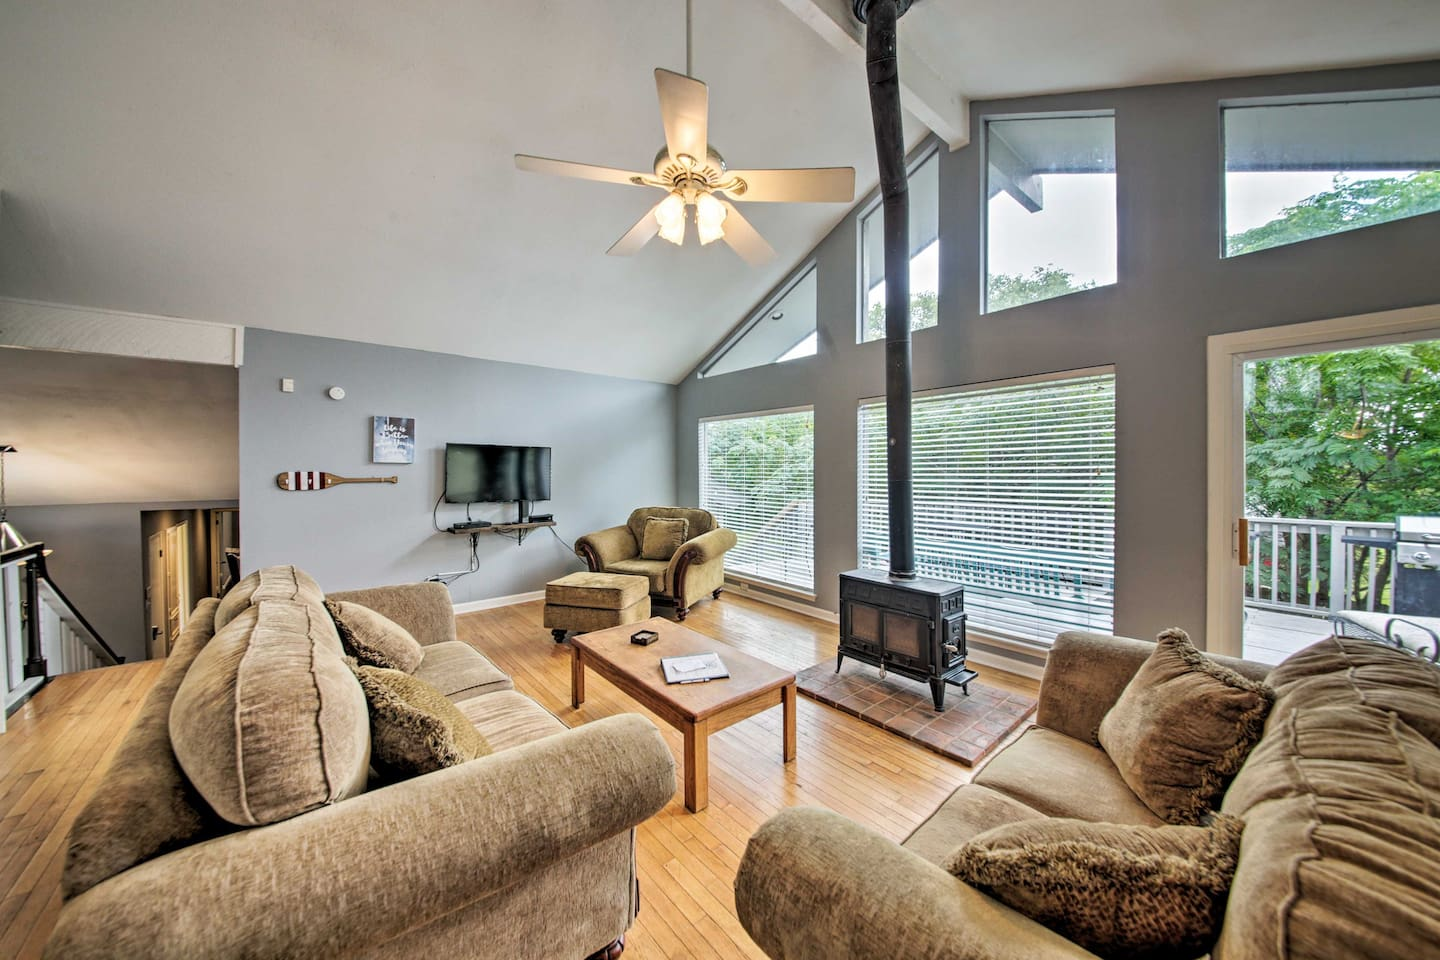 Ideal for a family of 8, this home offers Smart TVs, a fireplace, and more!